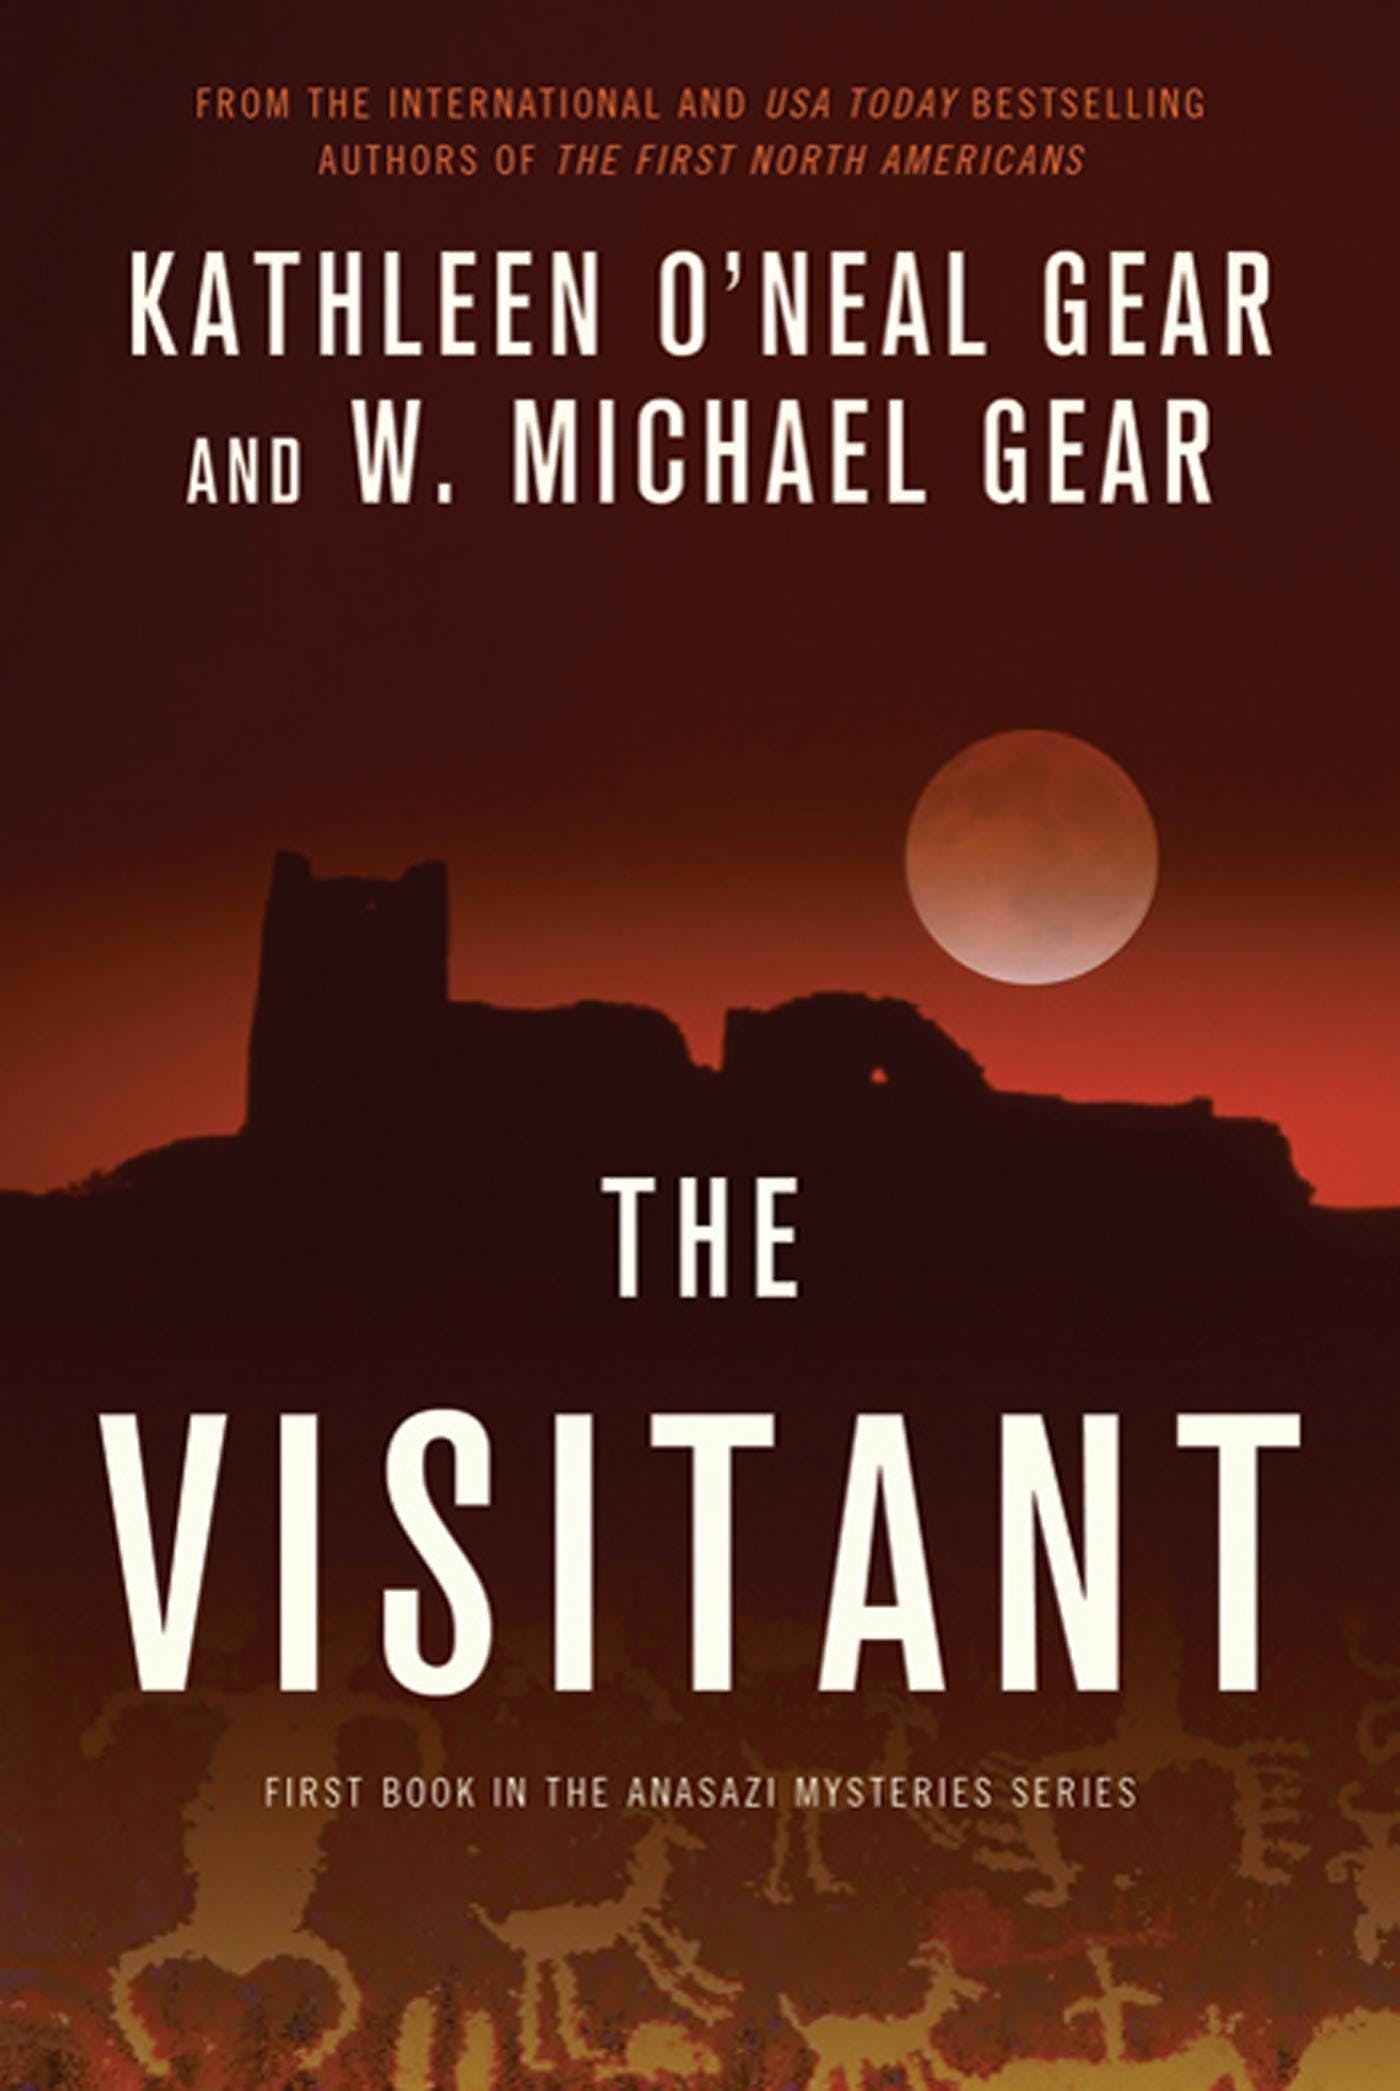 Image of The Visitant